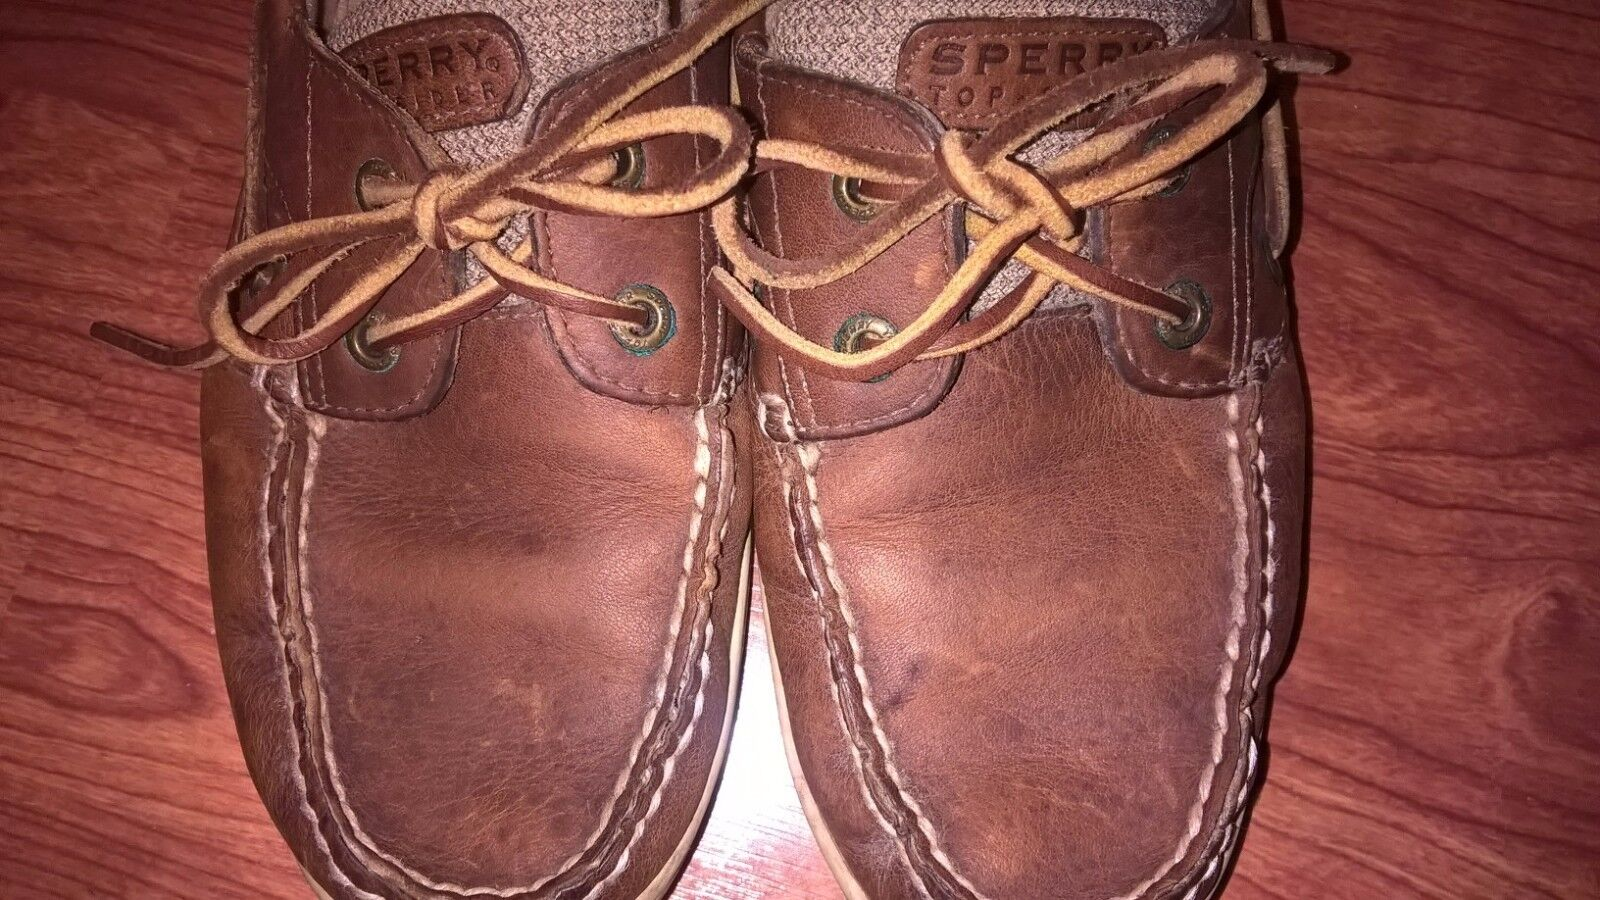 Sperry Braun Top-Sider Blaufish 2-Eye Braun Sperry Boat Schuhes Sz10 EUC 6402ac